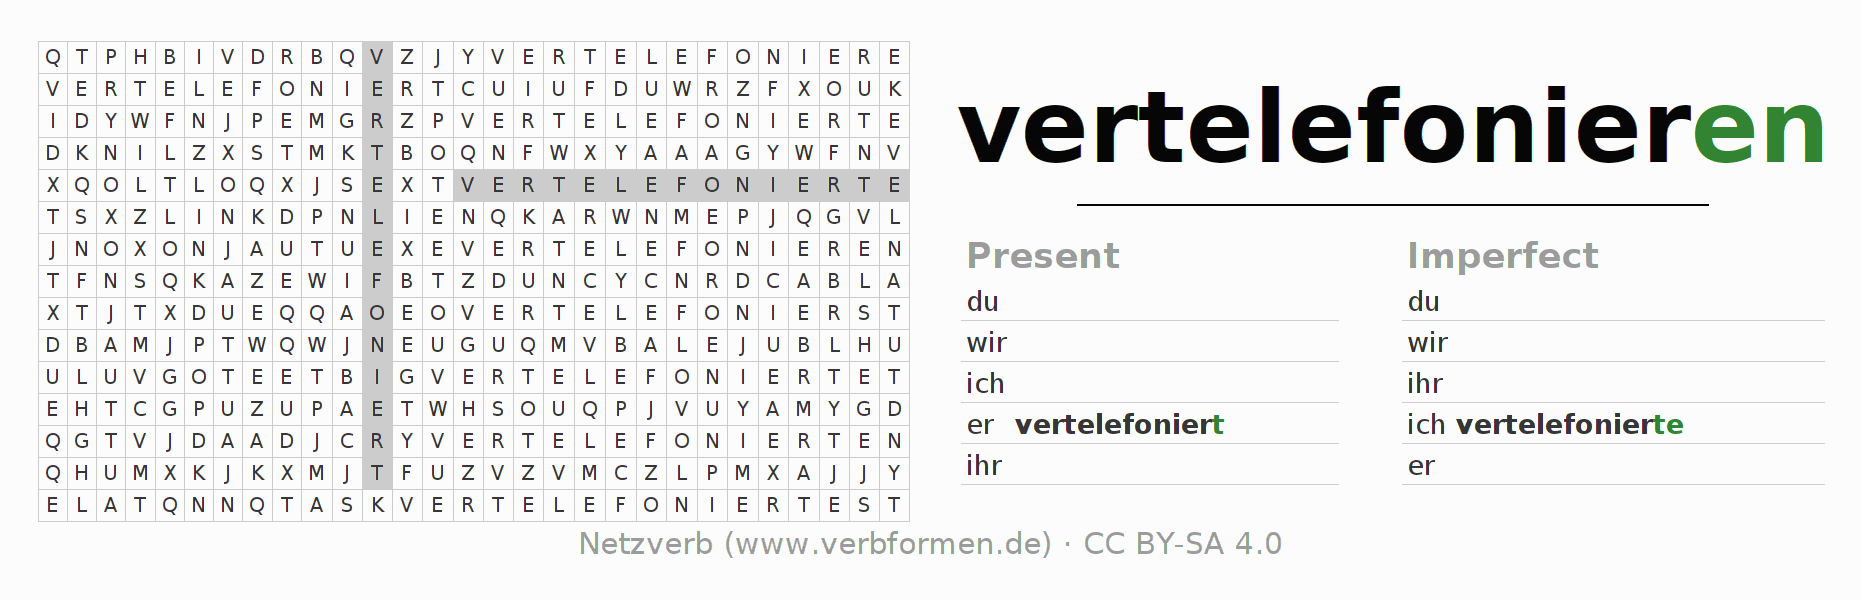 Word search puzzle for the conjugation of the verb vertelefonieren